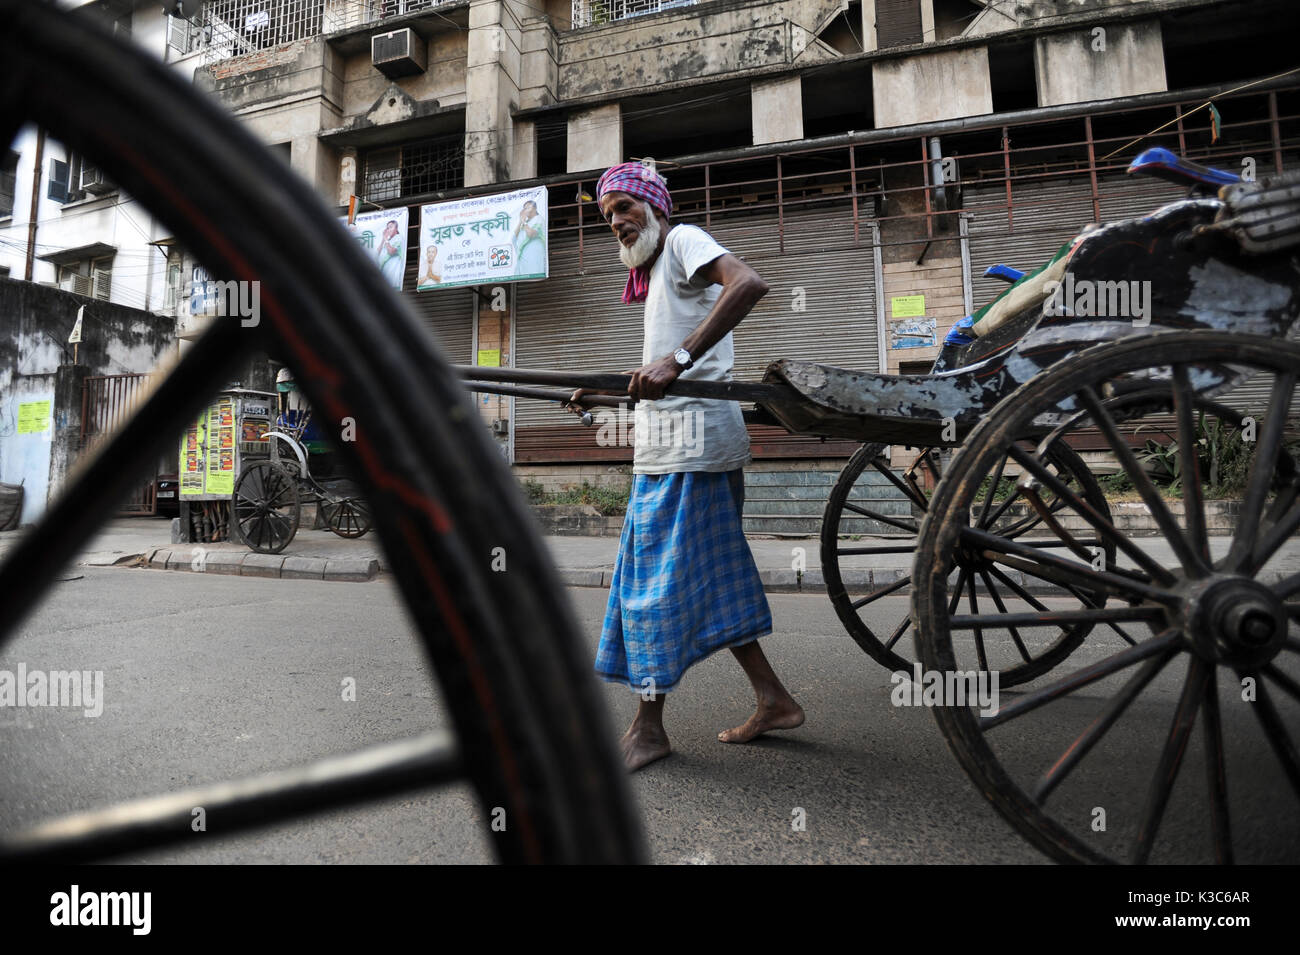 03.12.2011, Kolkata, West Bengal, India, Asia - Rickshaw puller Mohamed pulls his wooden rickshaw through the streets - Stock Image